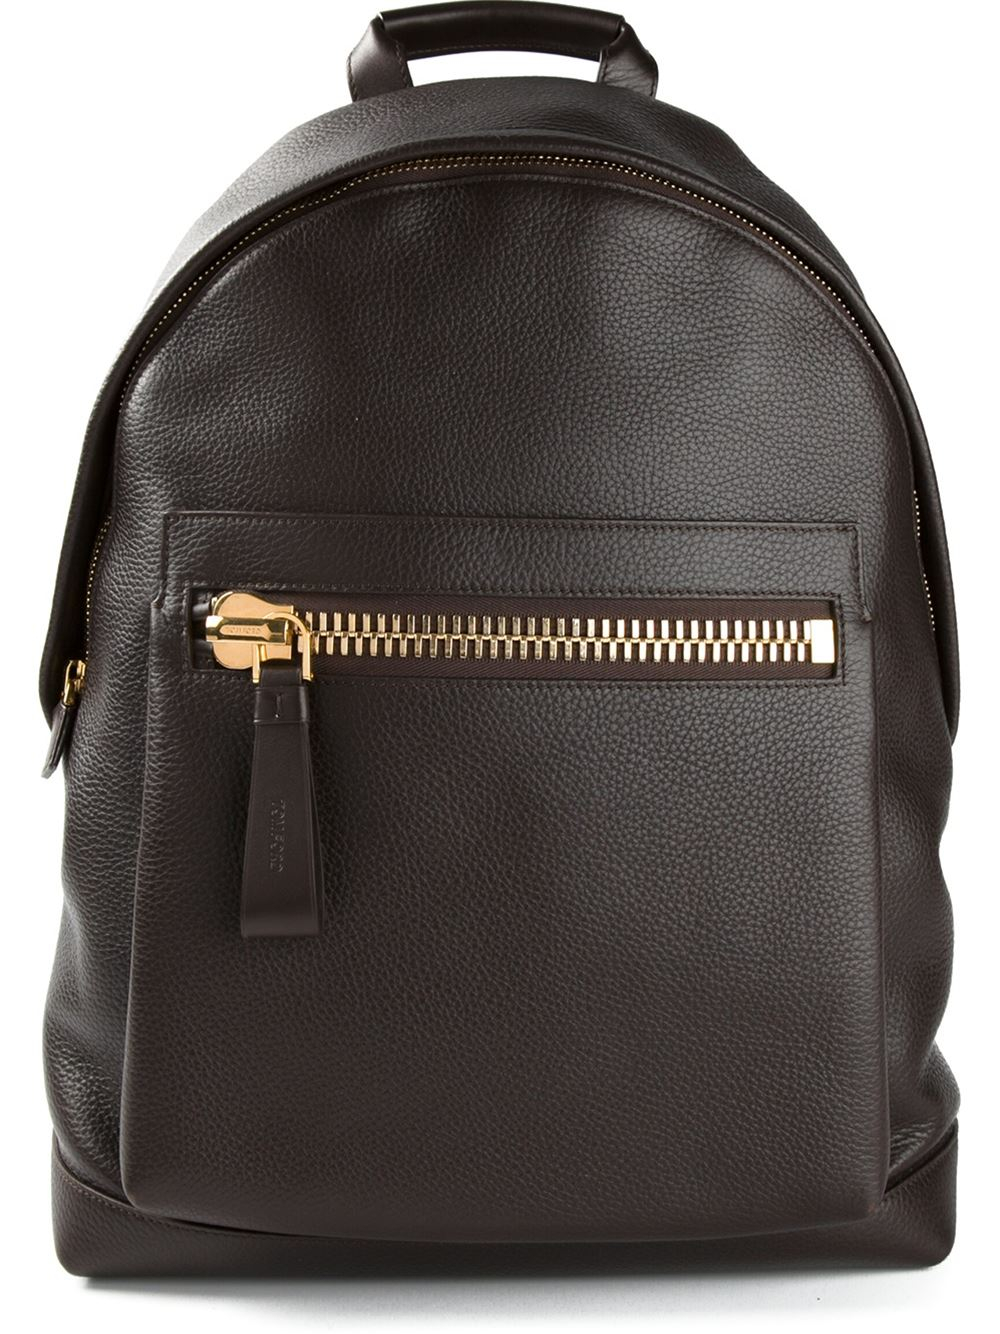 Tom Ford Buckley Backpack In Brown For Men Lyst